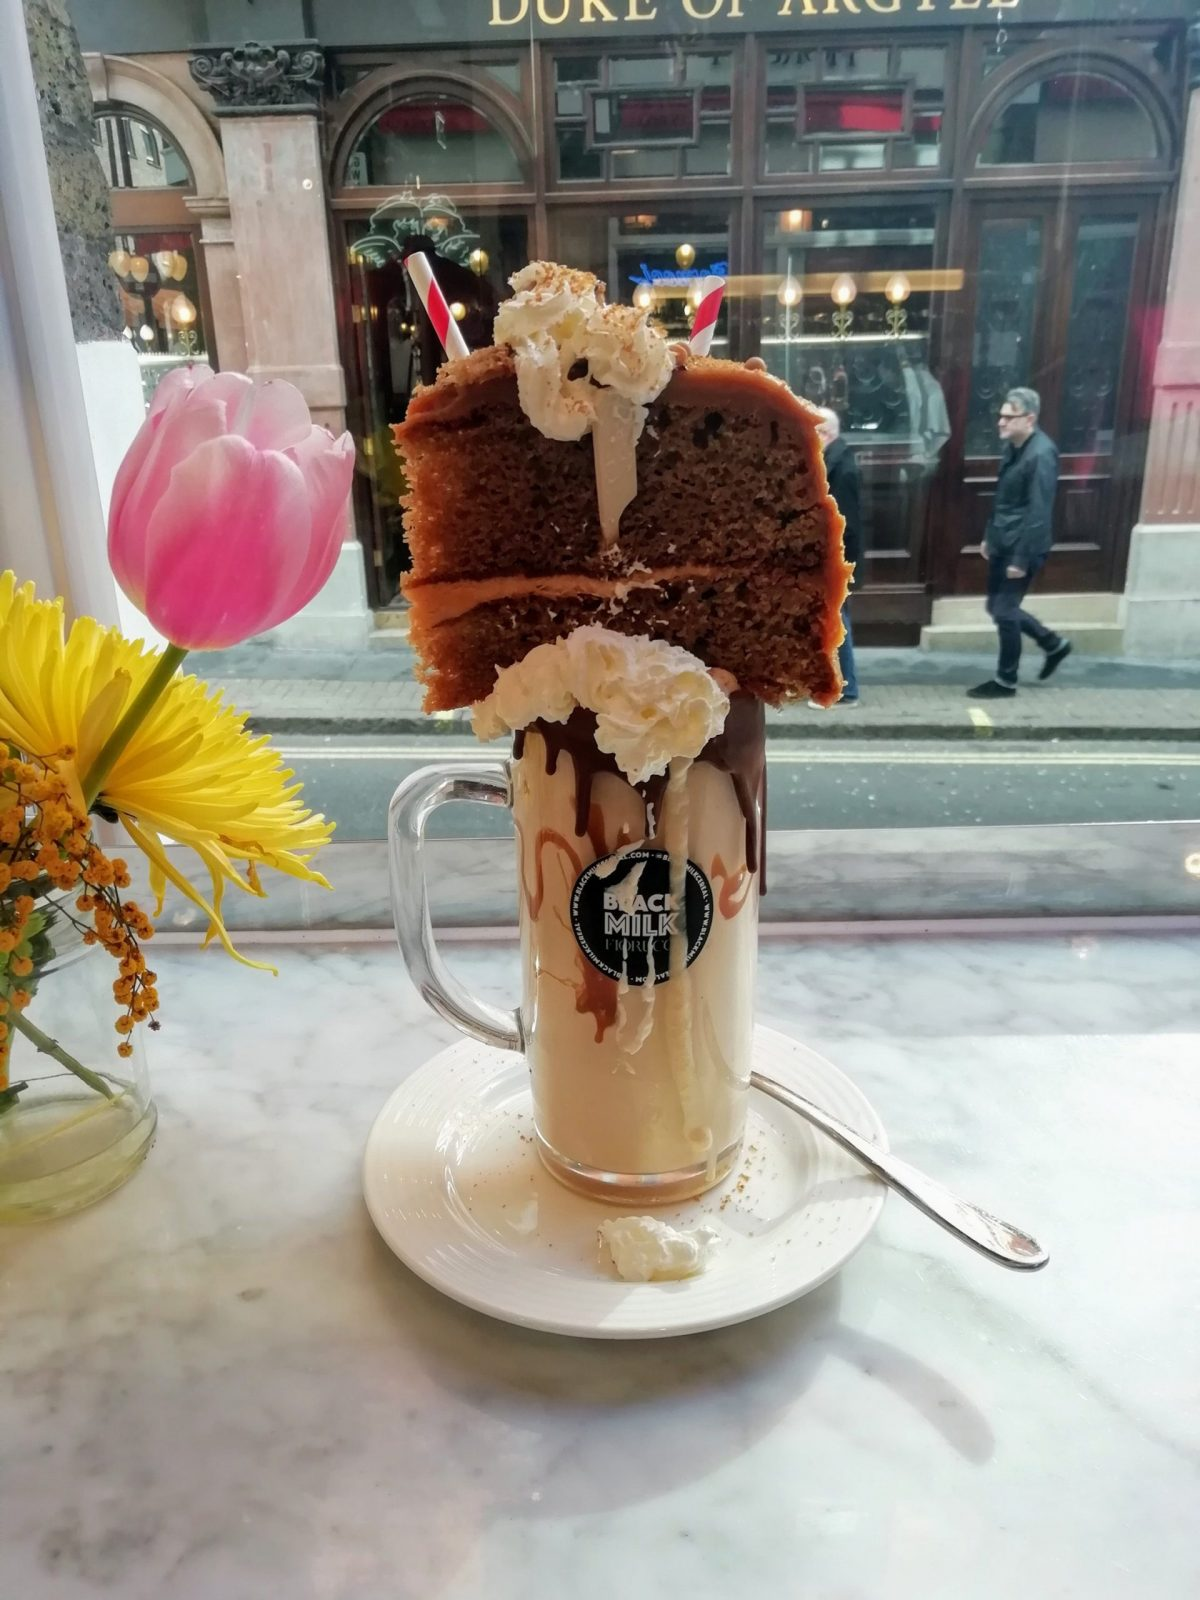 Best milkshakes in London, Black and Milk